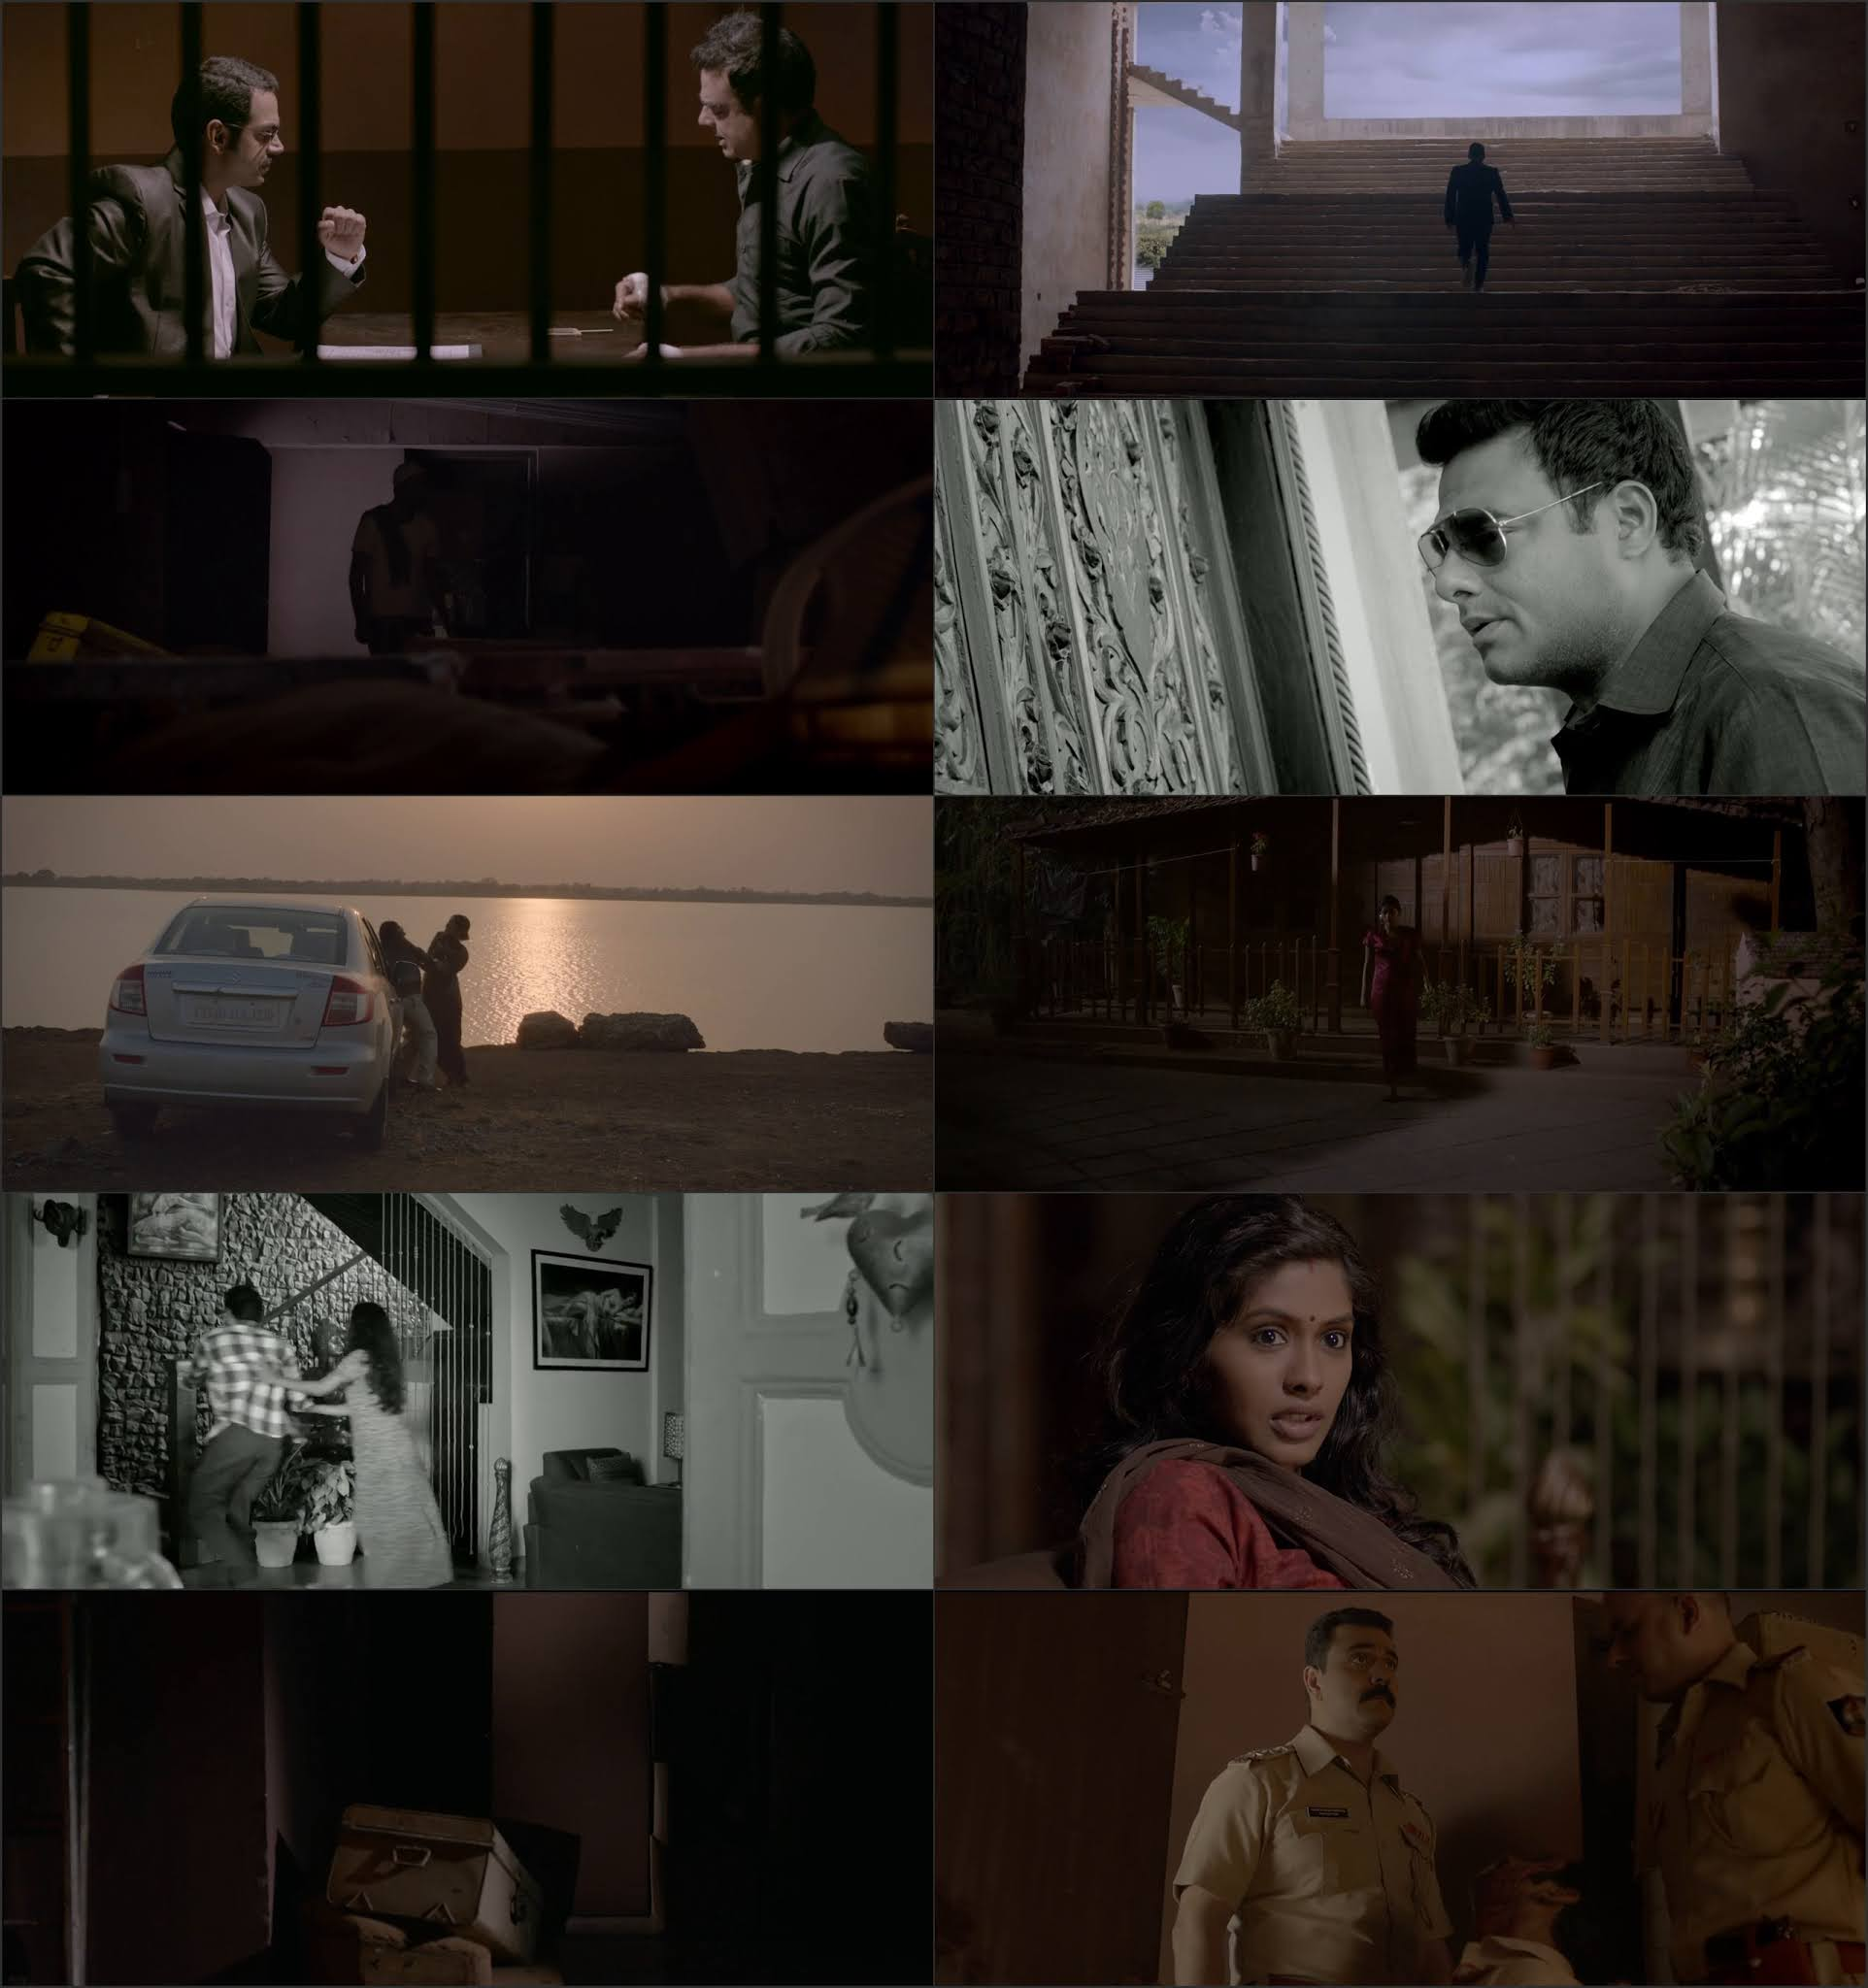 My Clients Wife 2020 WEB-DL 850MB Hindi Movie Download 720p